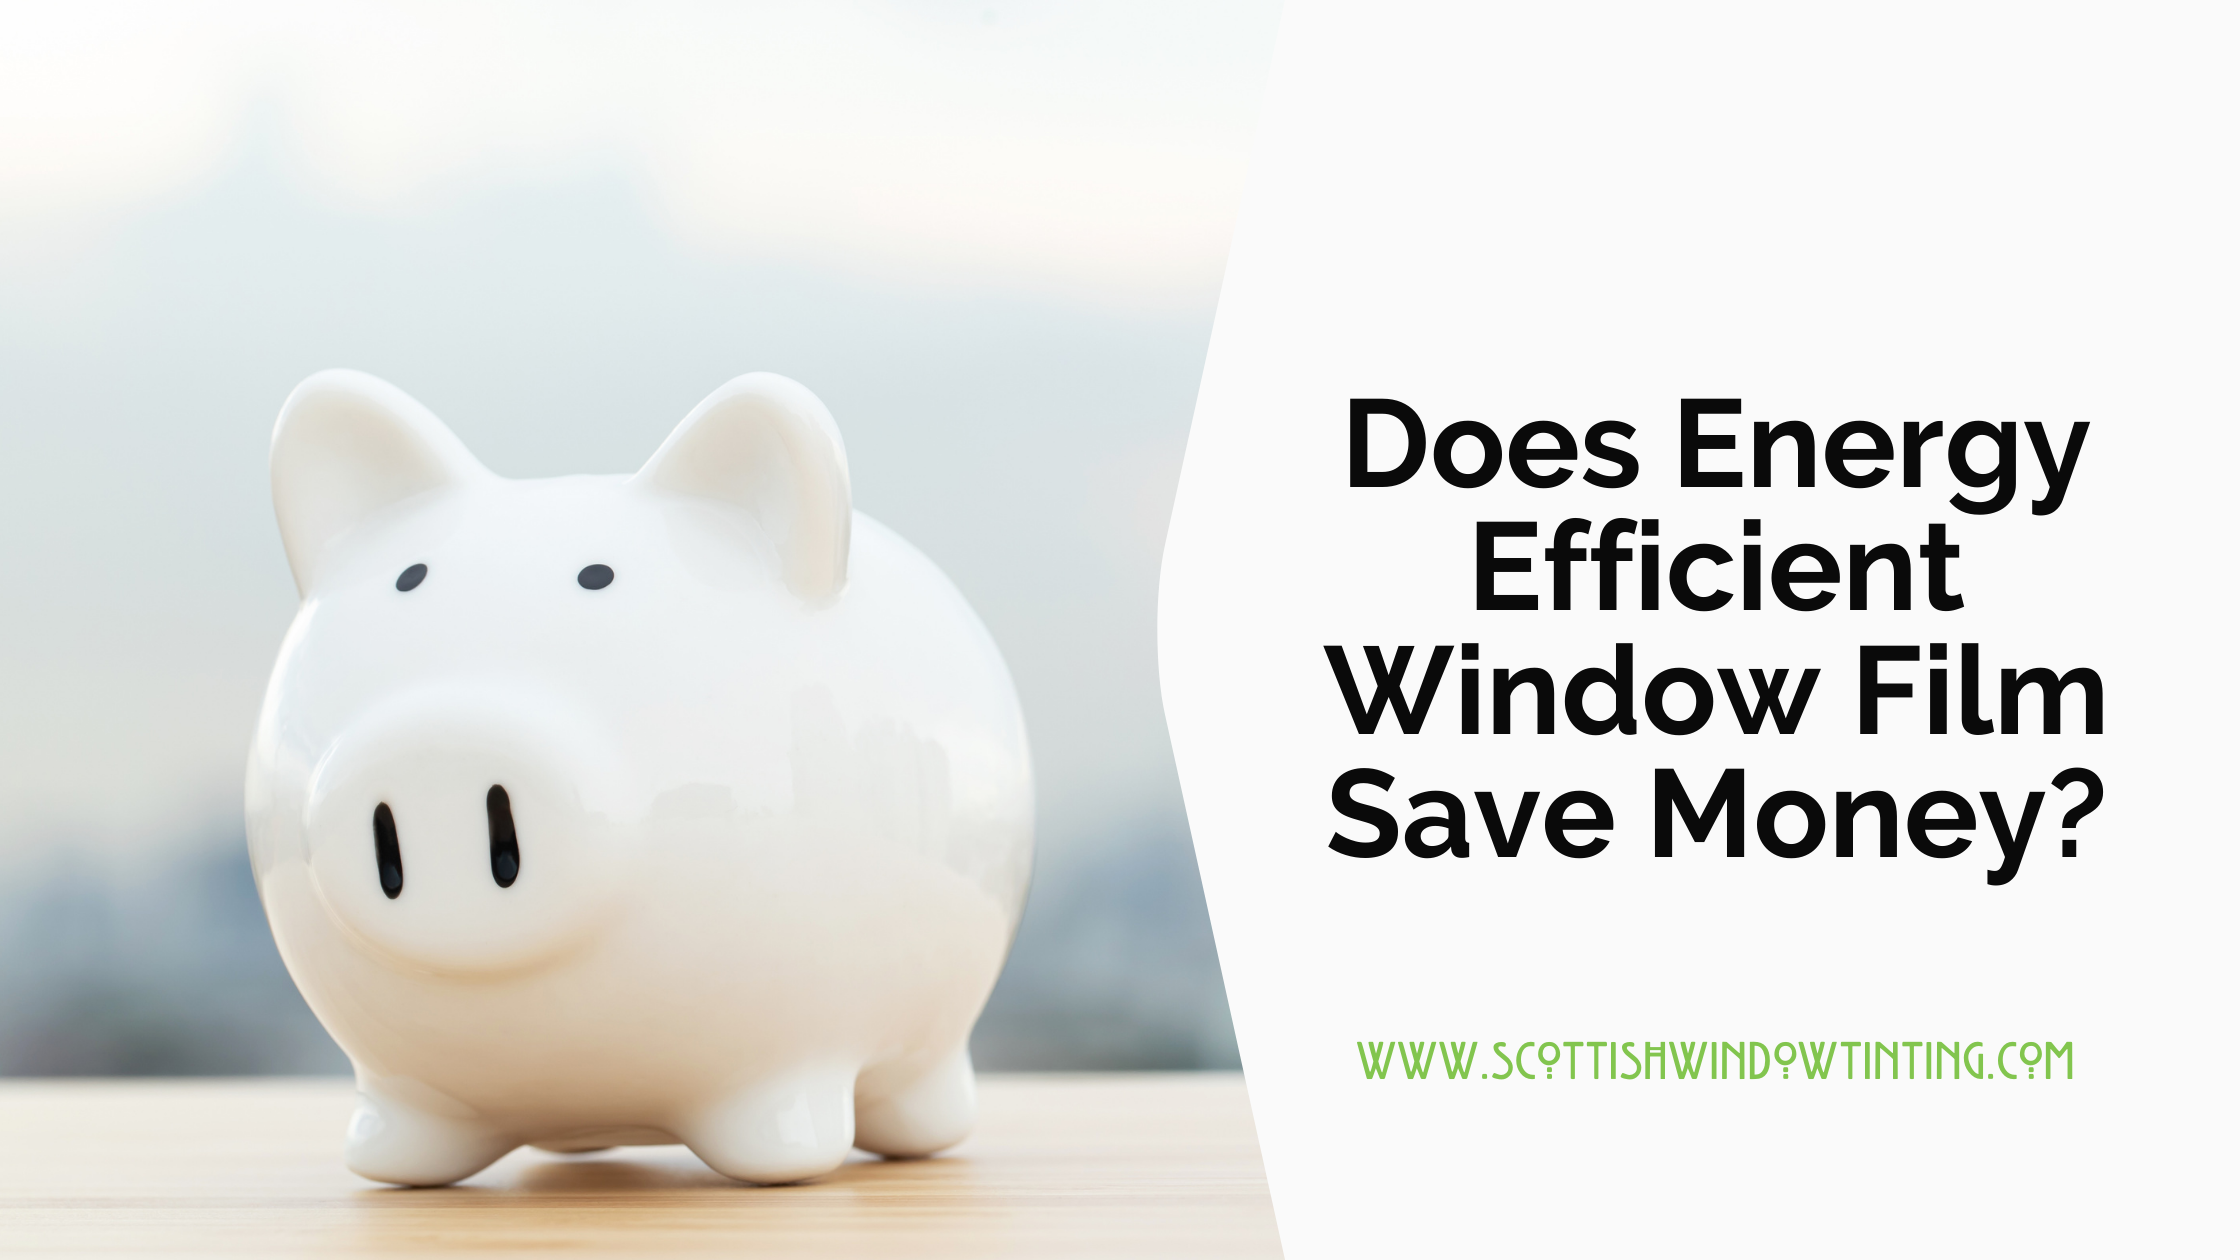 Does Energy Efficient Window Film Save Dallas Homes Money?